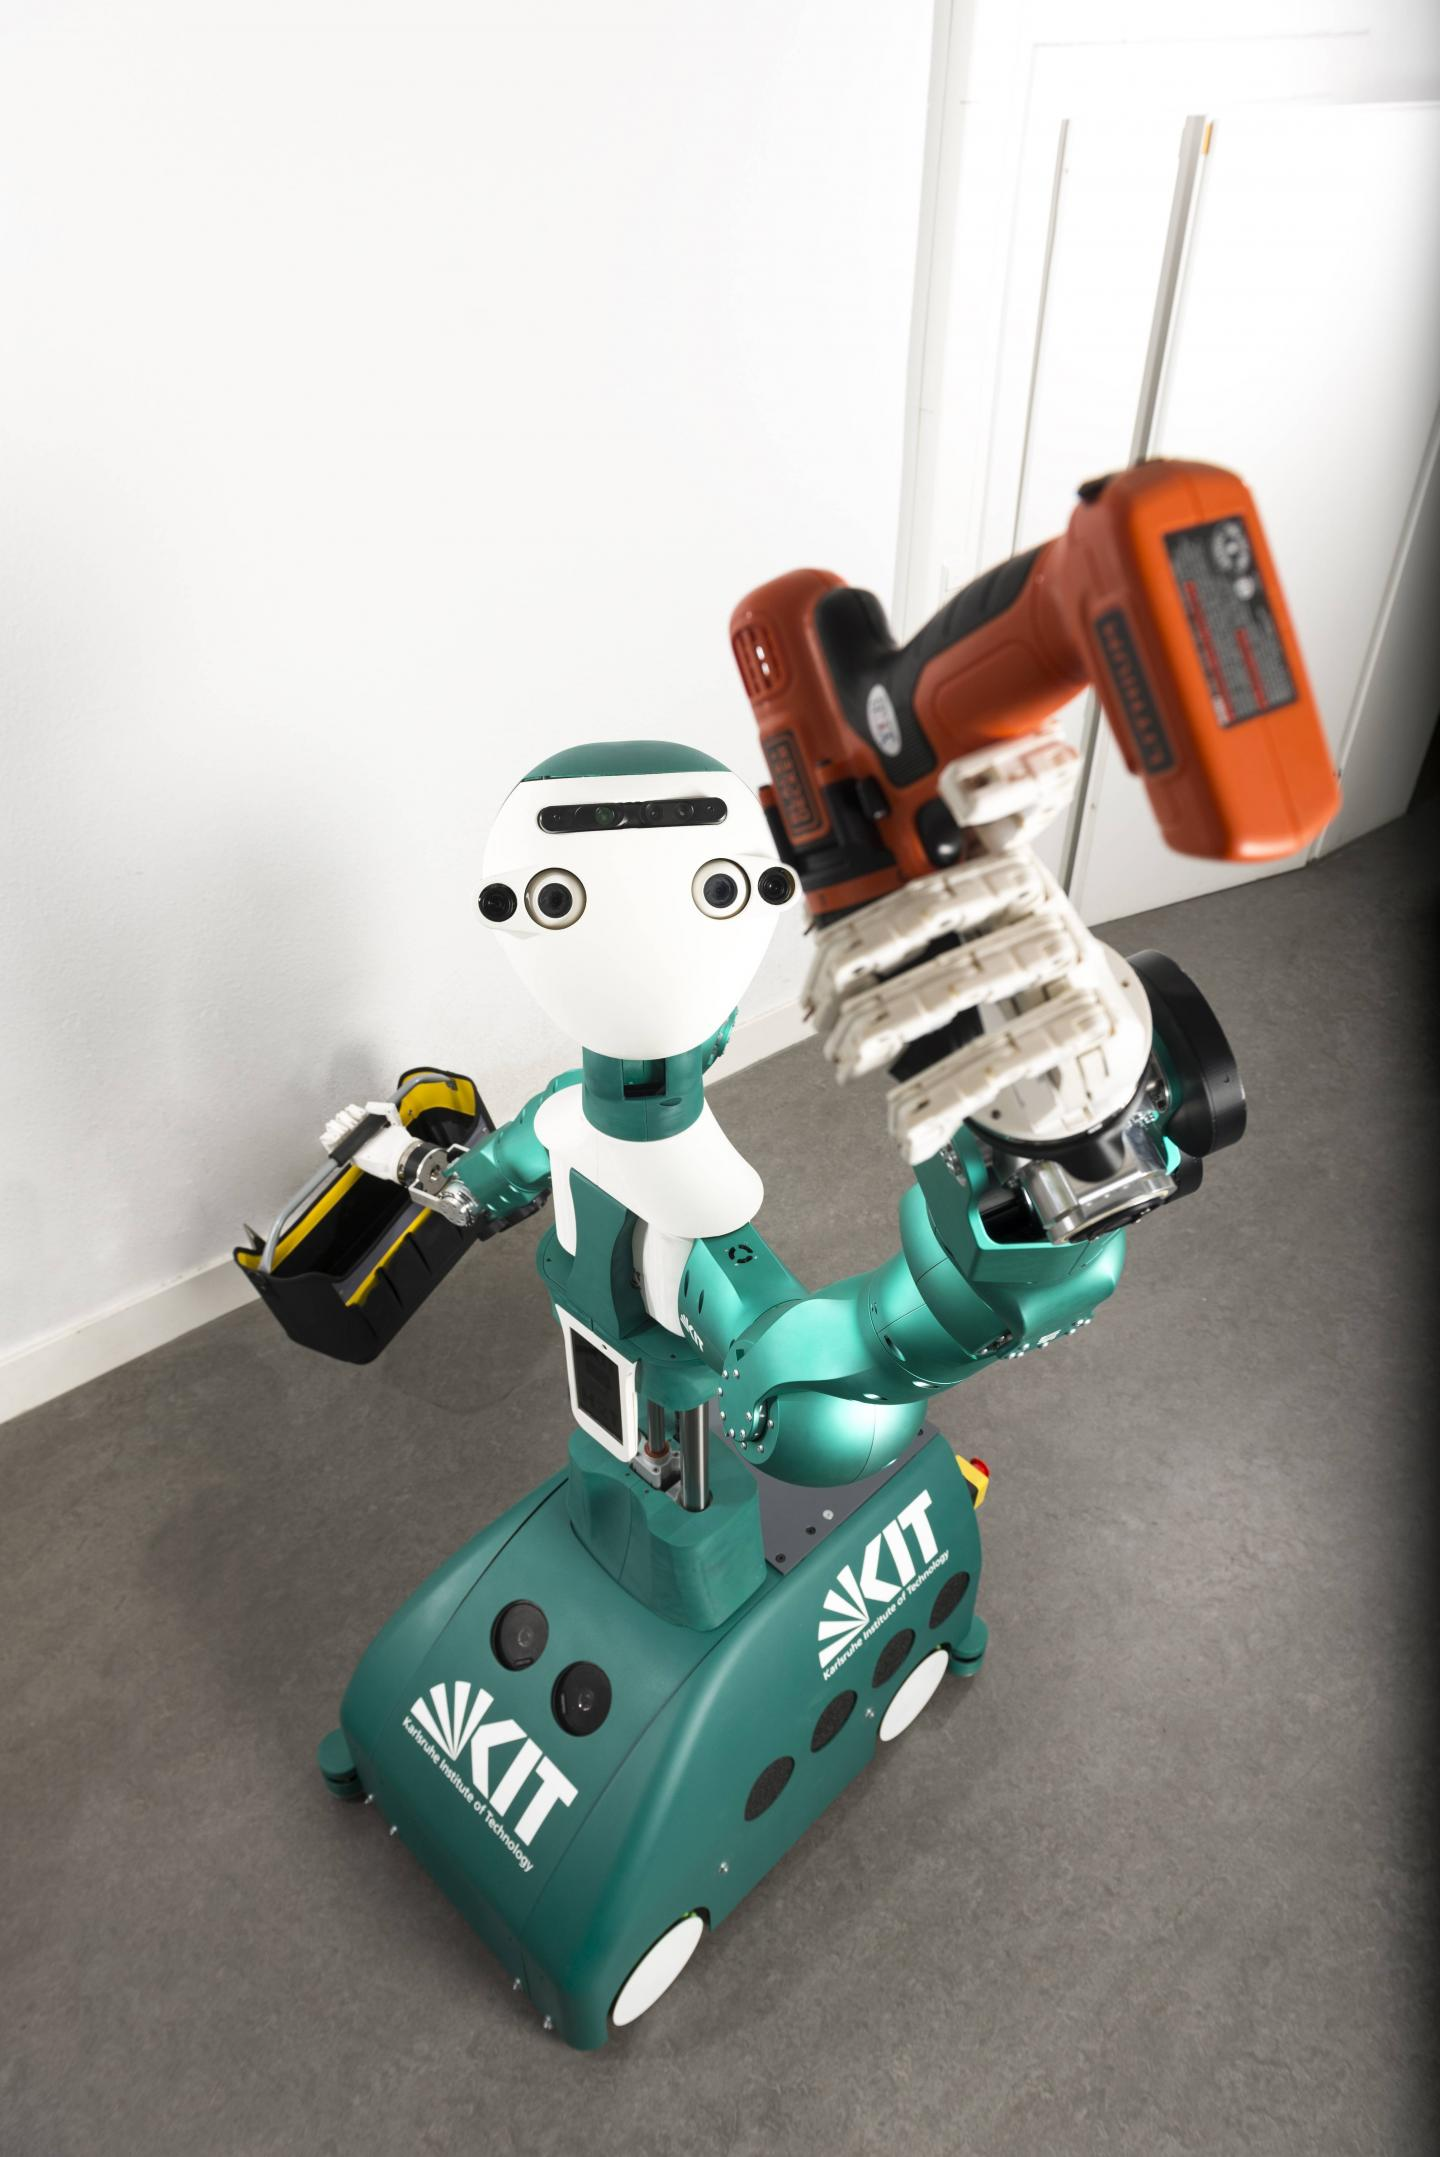 KIT to Showcase Self-Learning Humanoid Robot at CEBIT